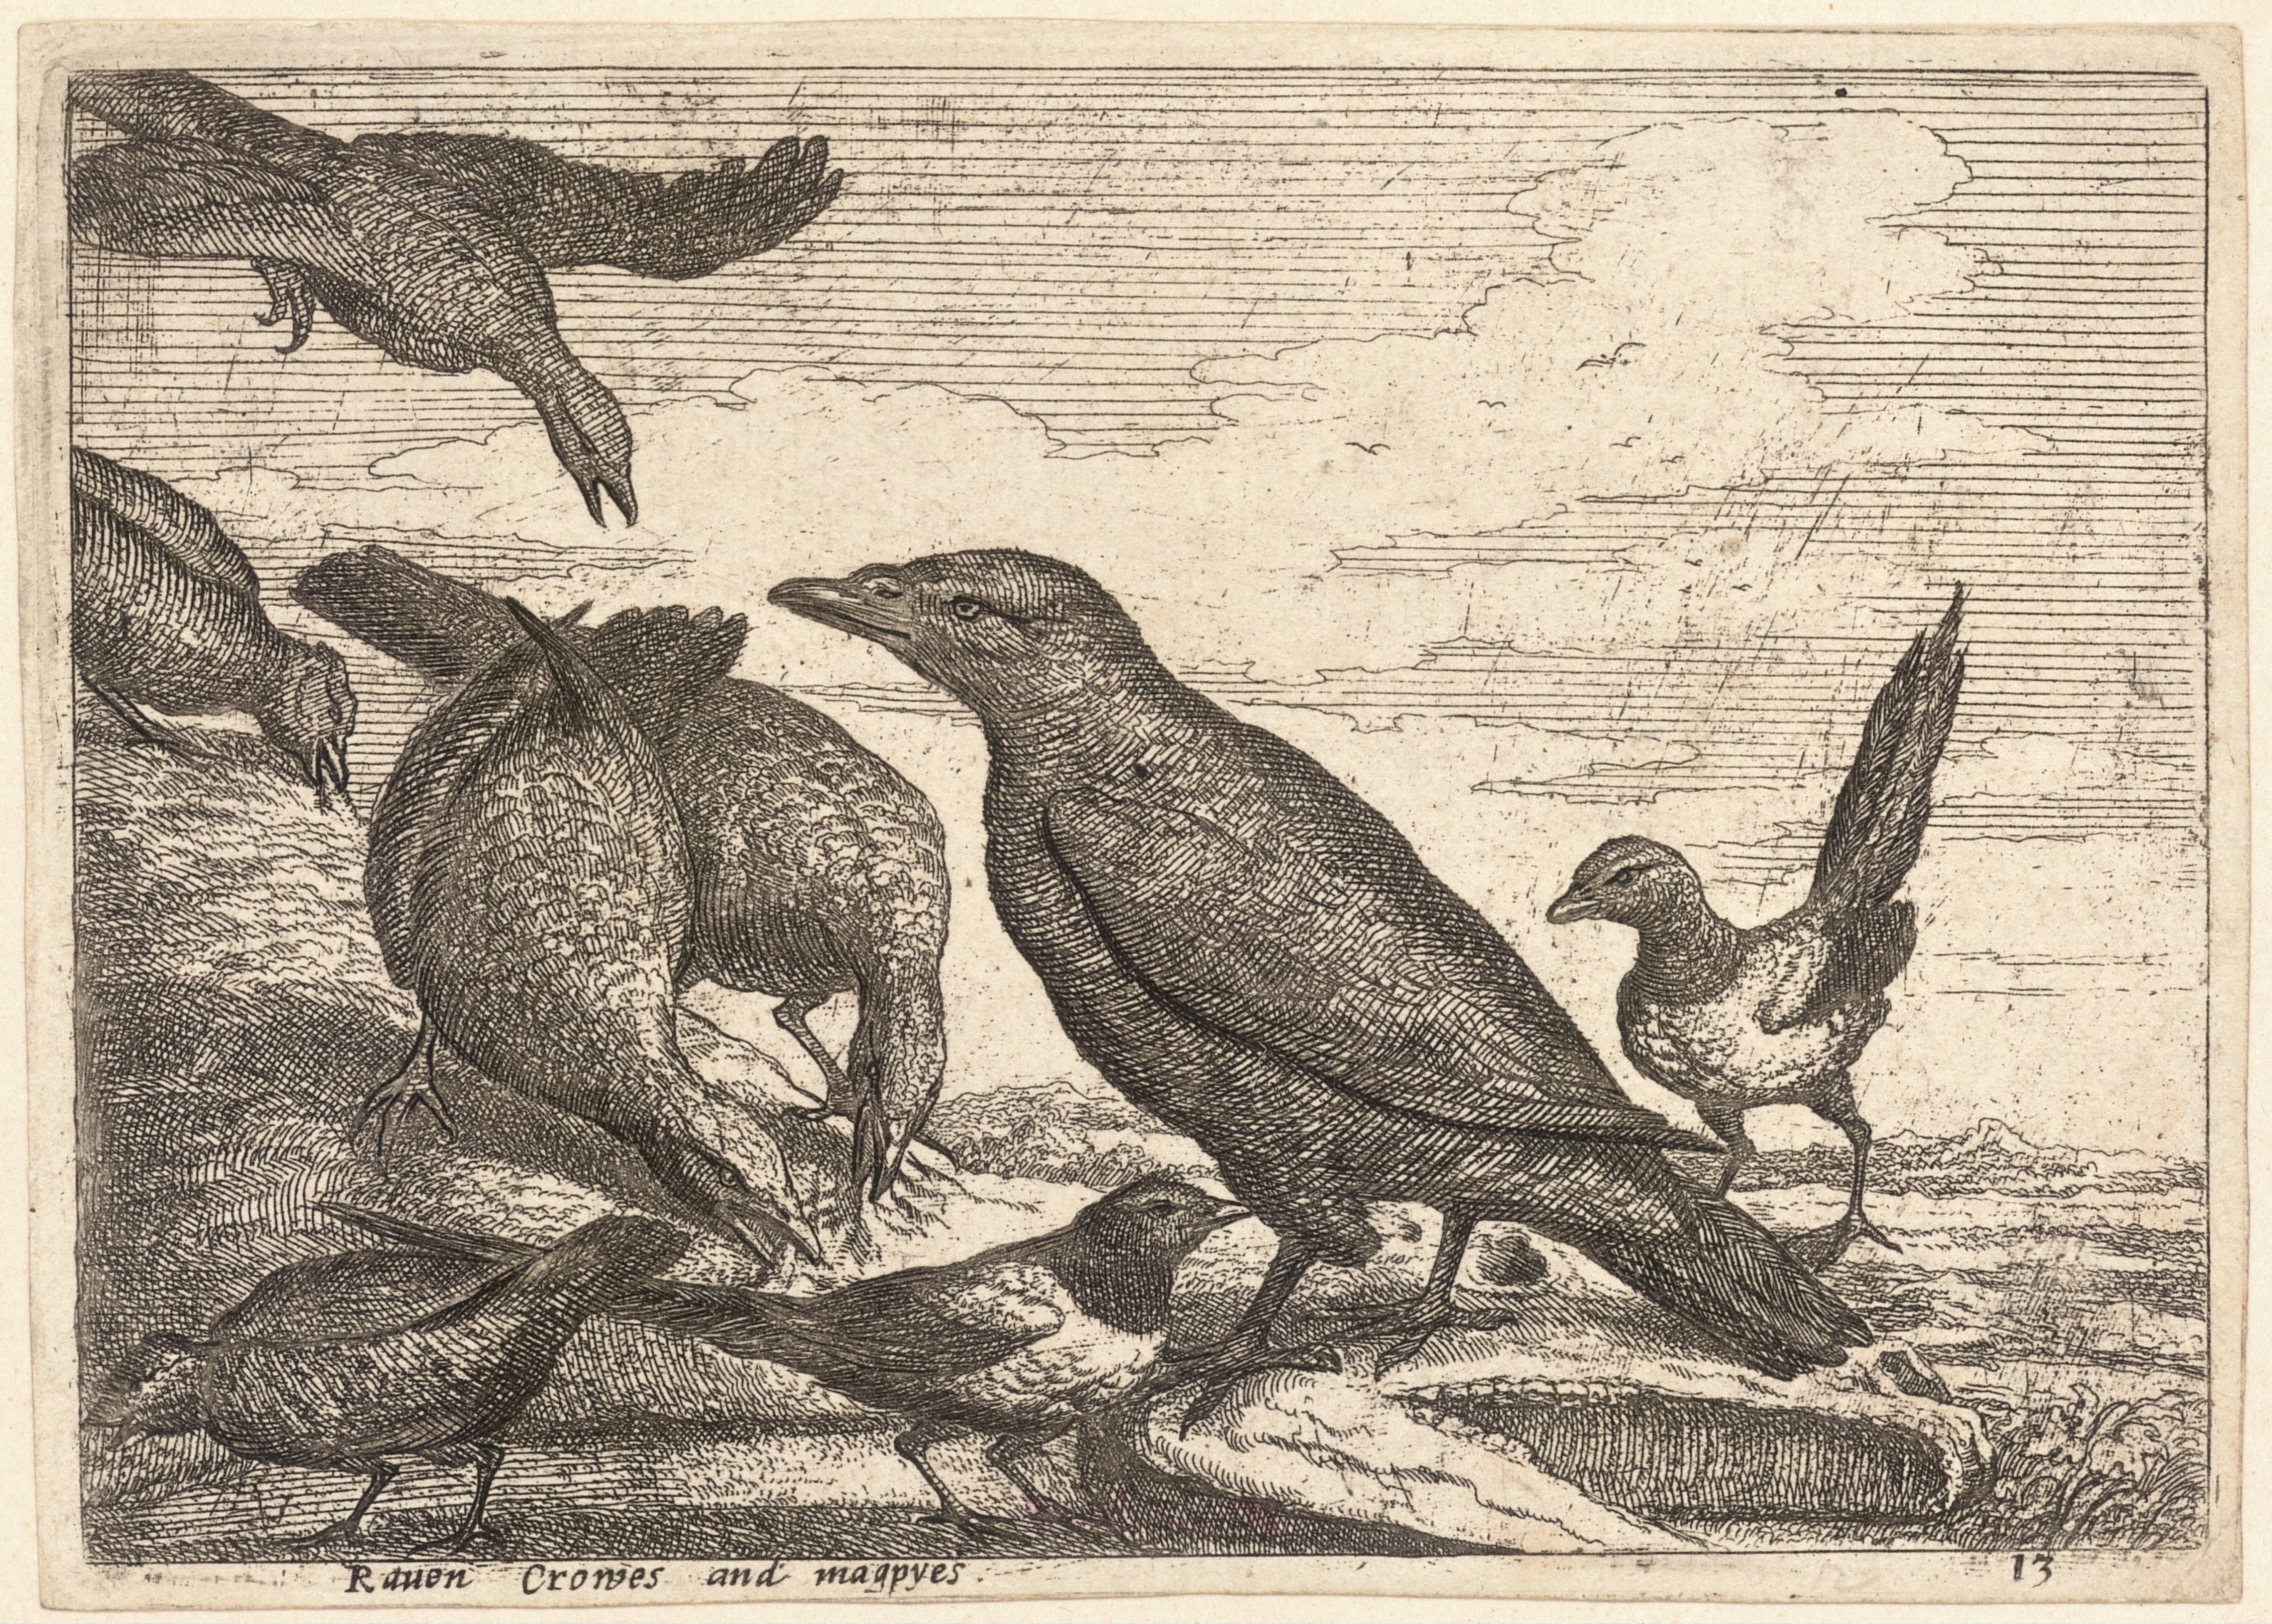 Wenceslas Hollar - Raven, crows and magpies